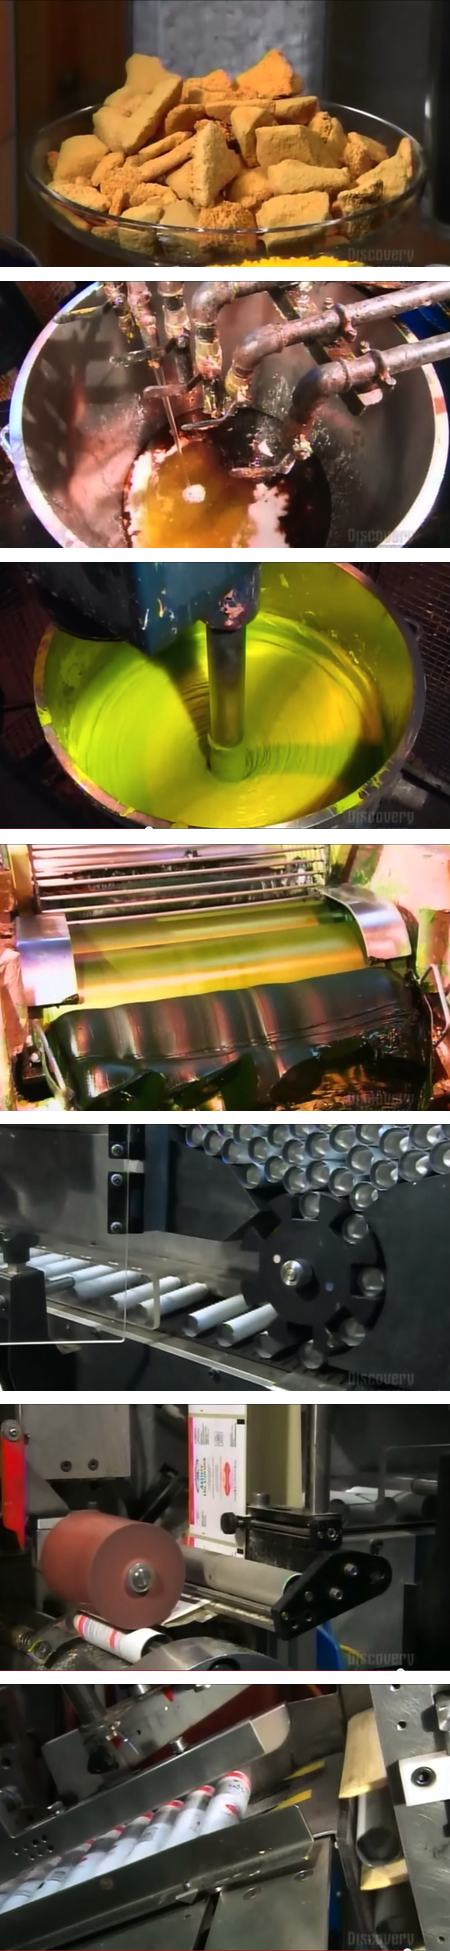 How It's Made - Oil Paints